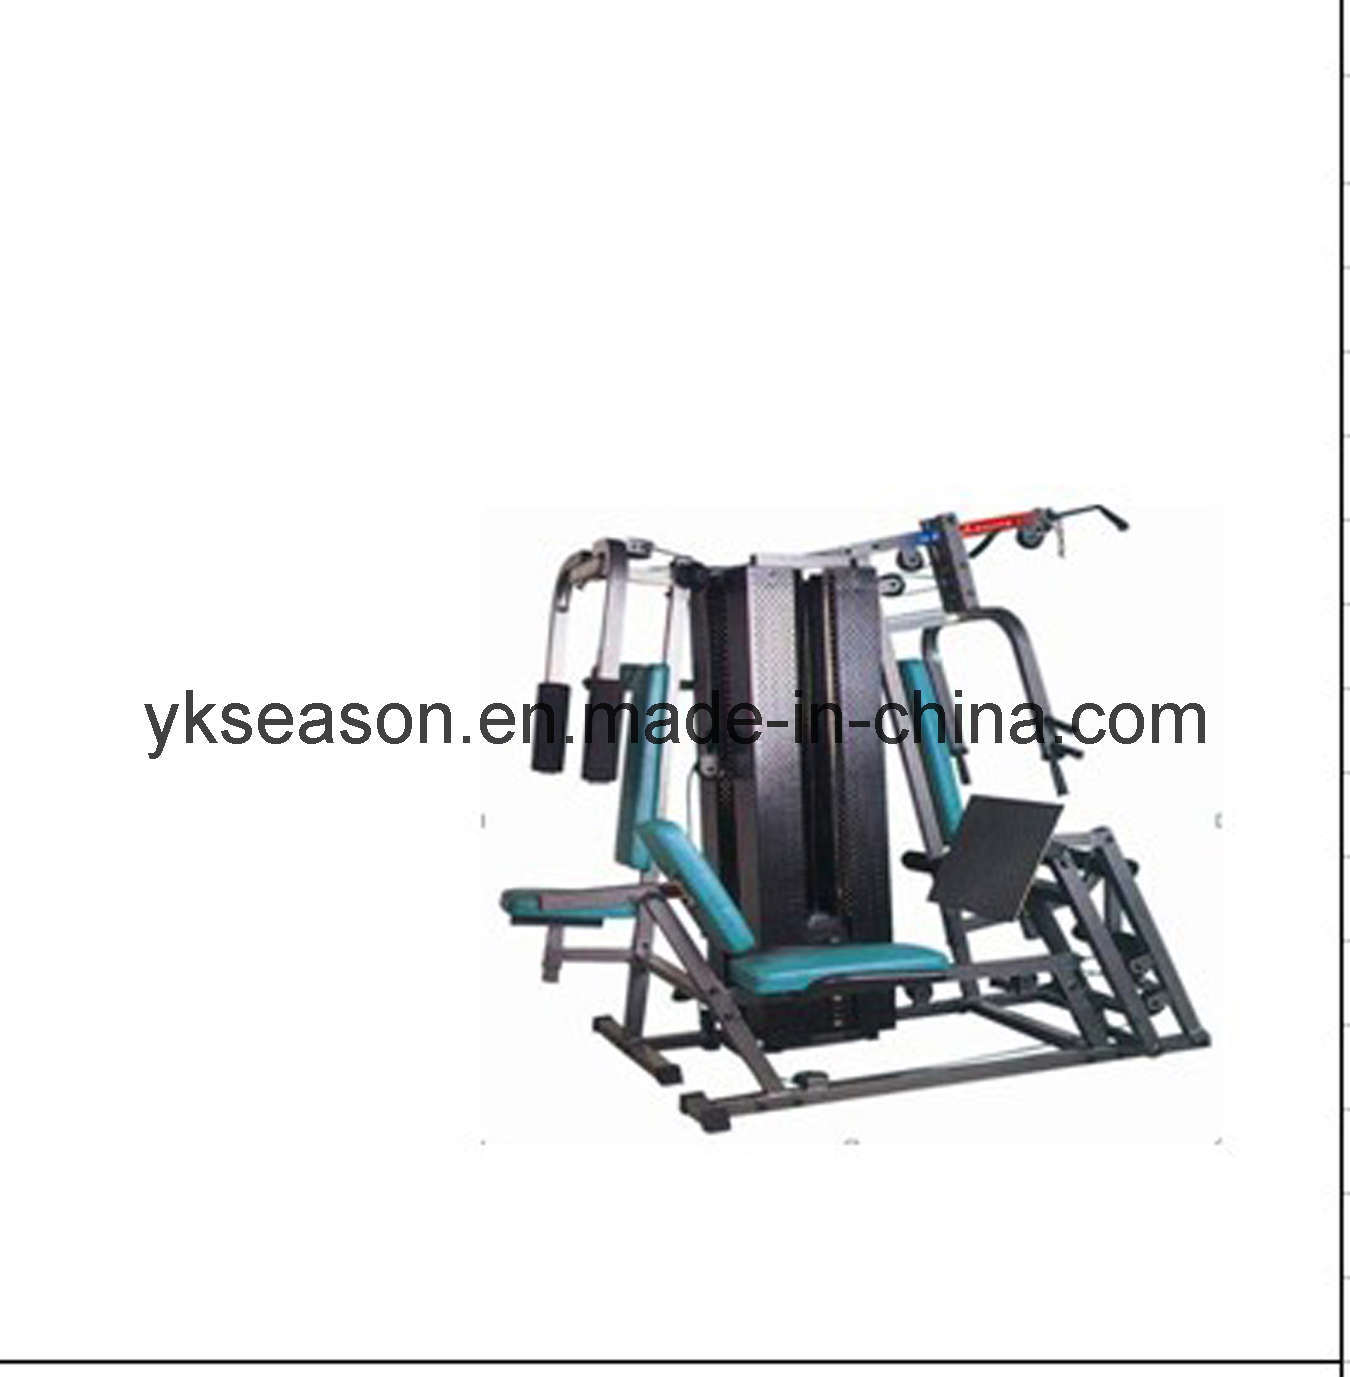 China home gym equipment machine sj